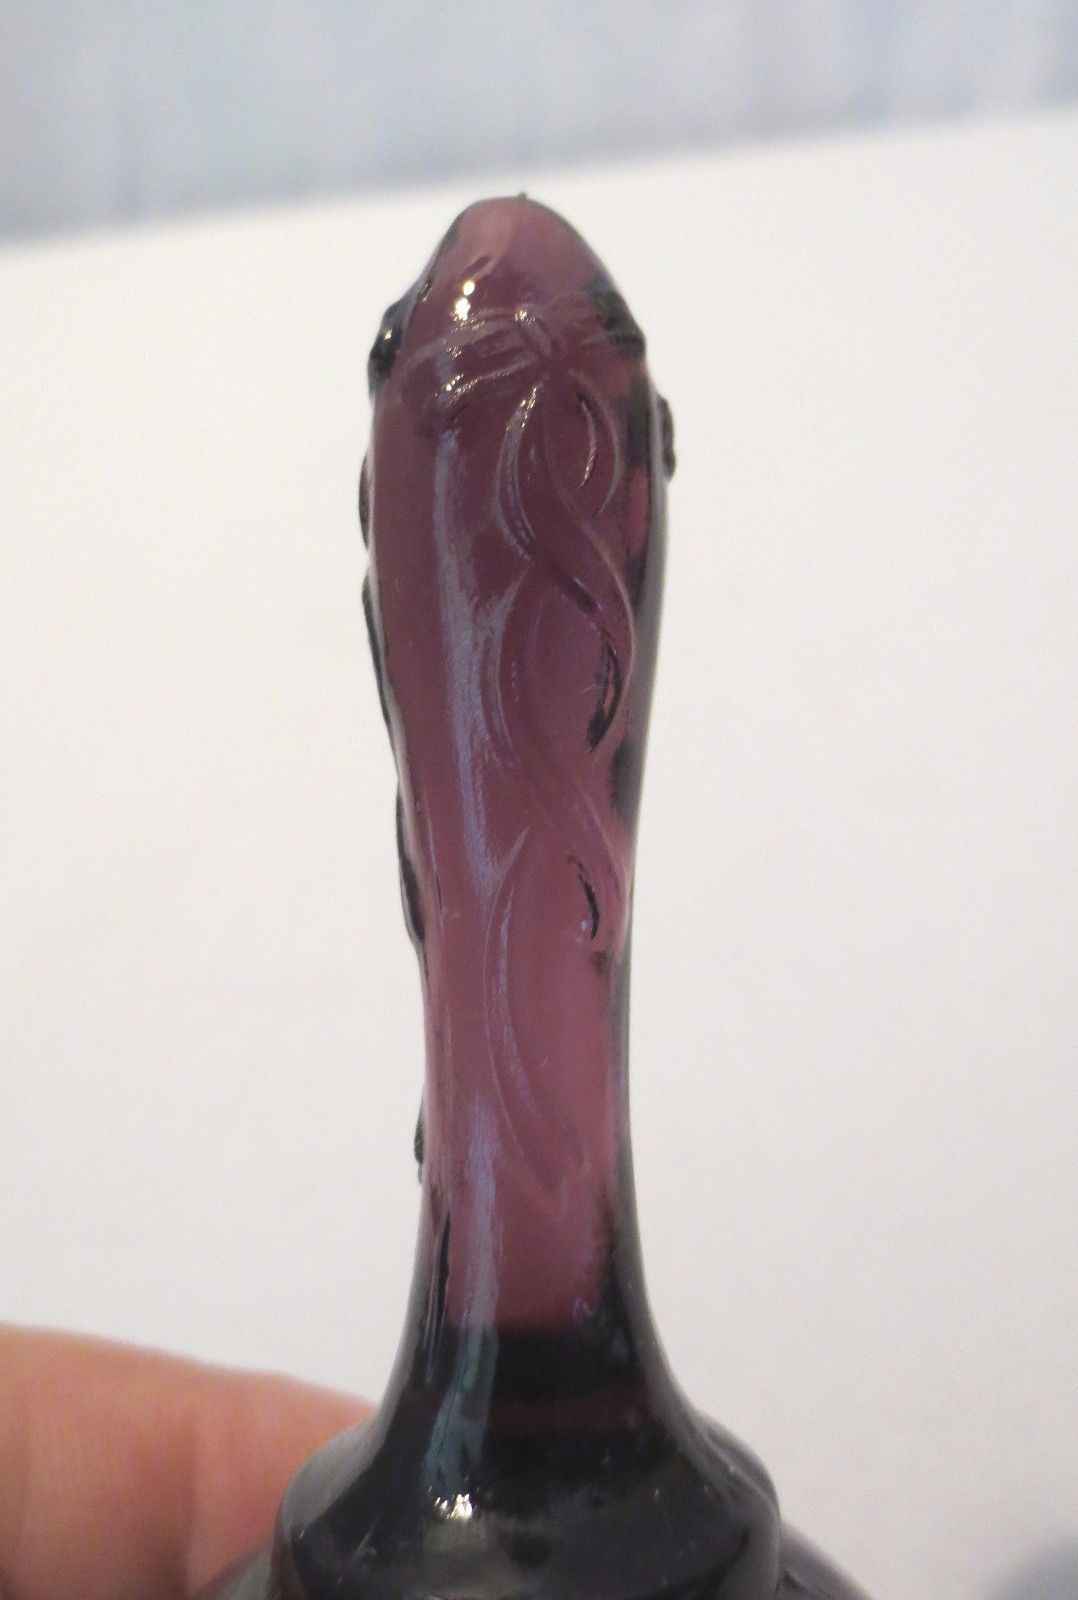 Fenton Glass Purple Floral Hand Painted Bell Swags Bows Signed K Brightbill